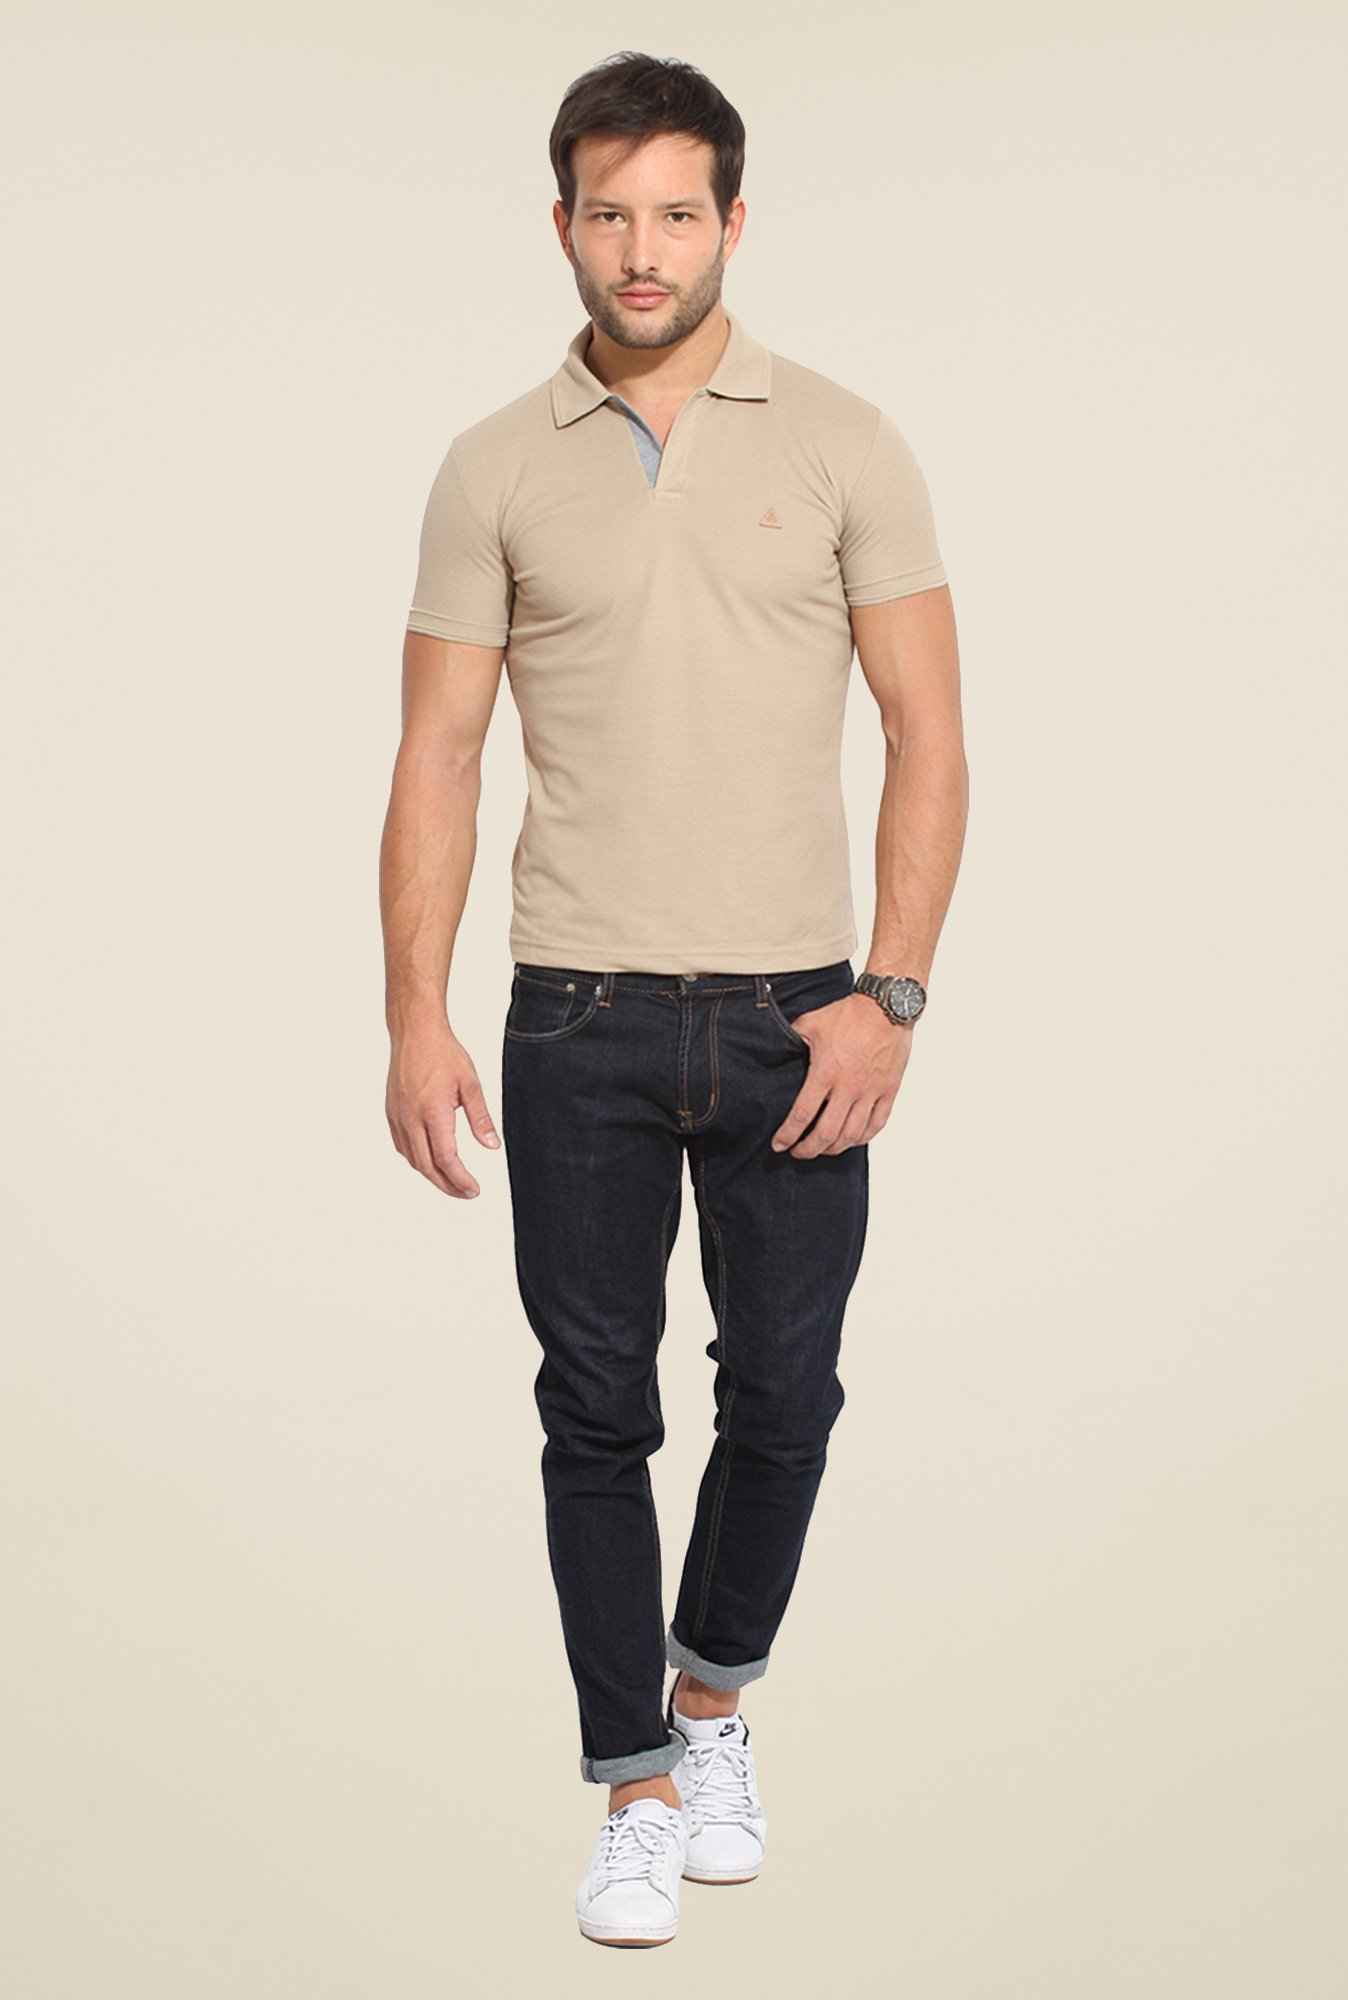 Duke Stardust Tan Solid T Shirt